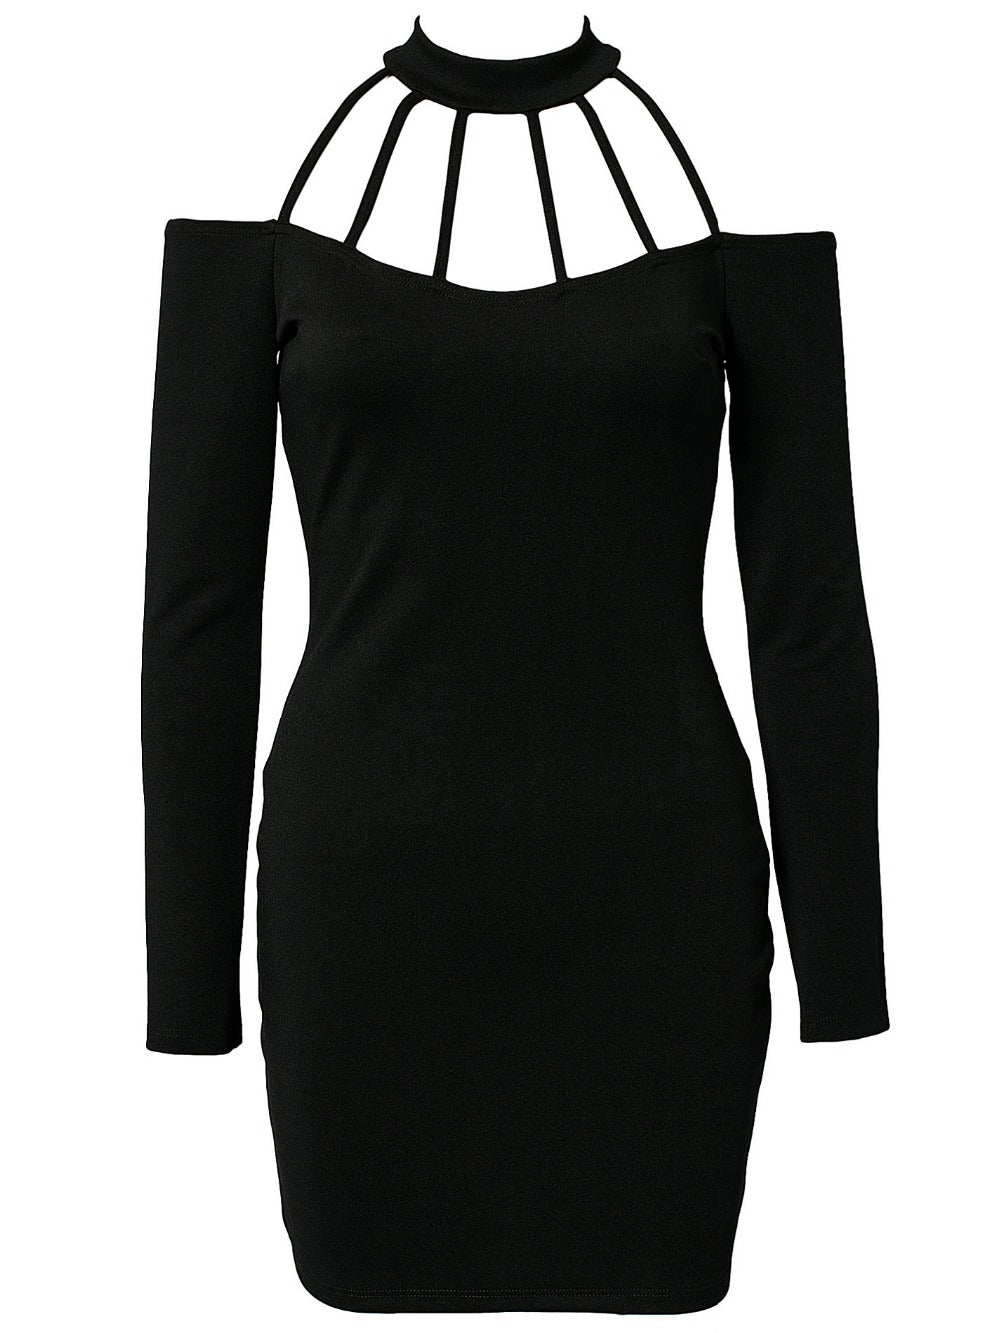 Plus Size Sexy Dress